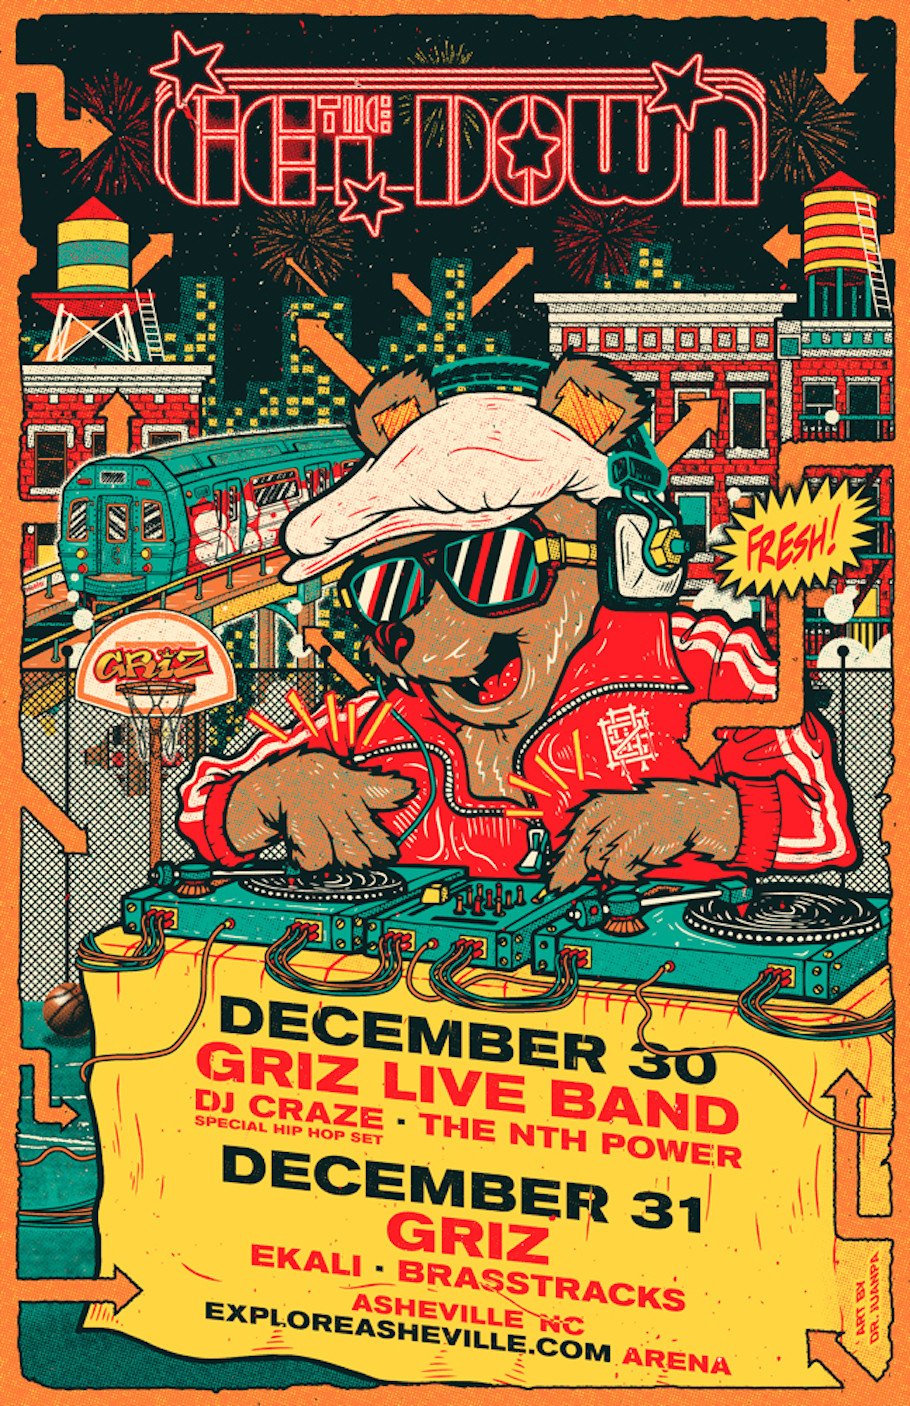 GRiZ Announces 'THE GET DOWN' NYE Shows